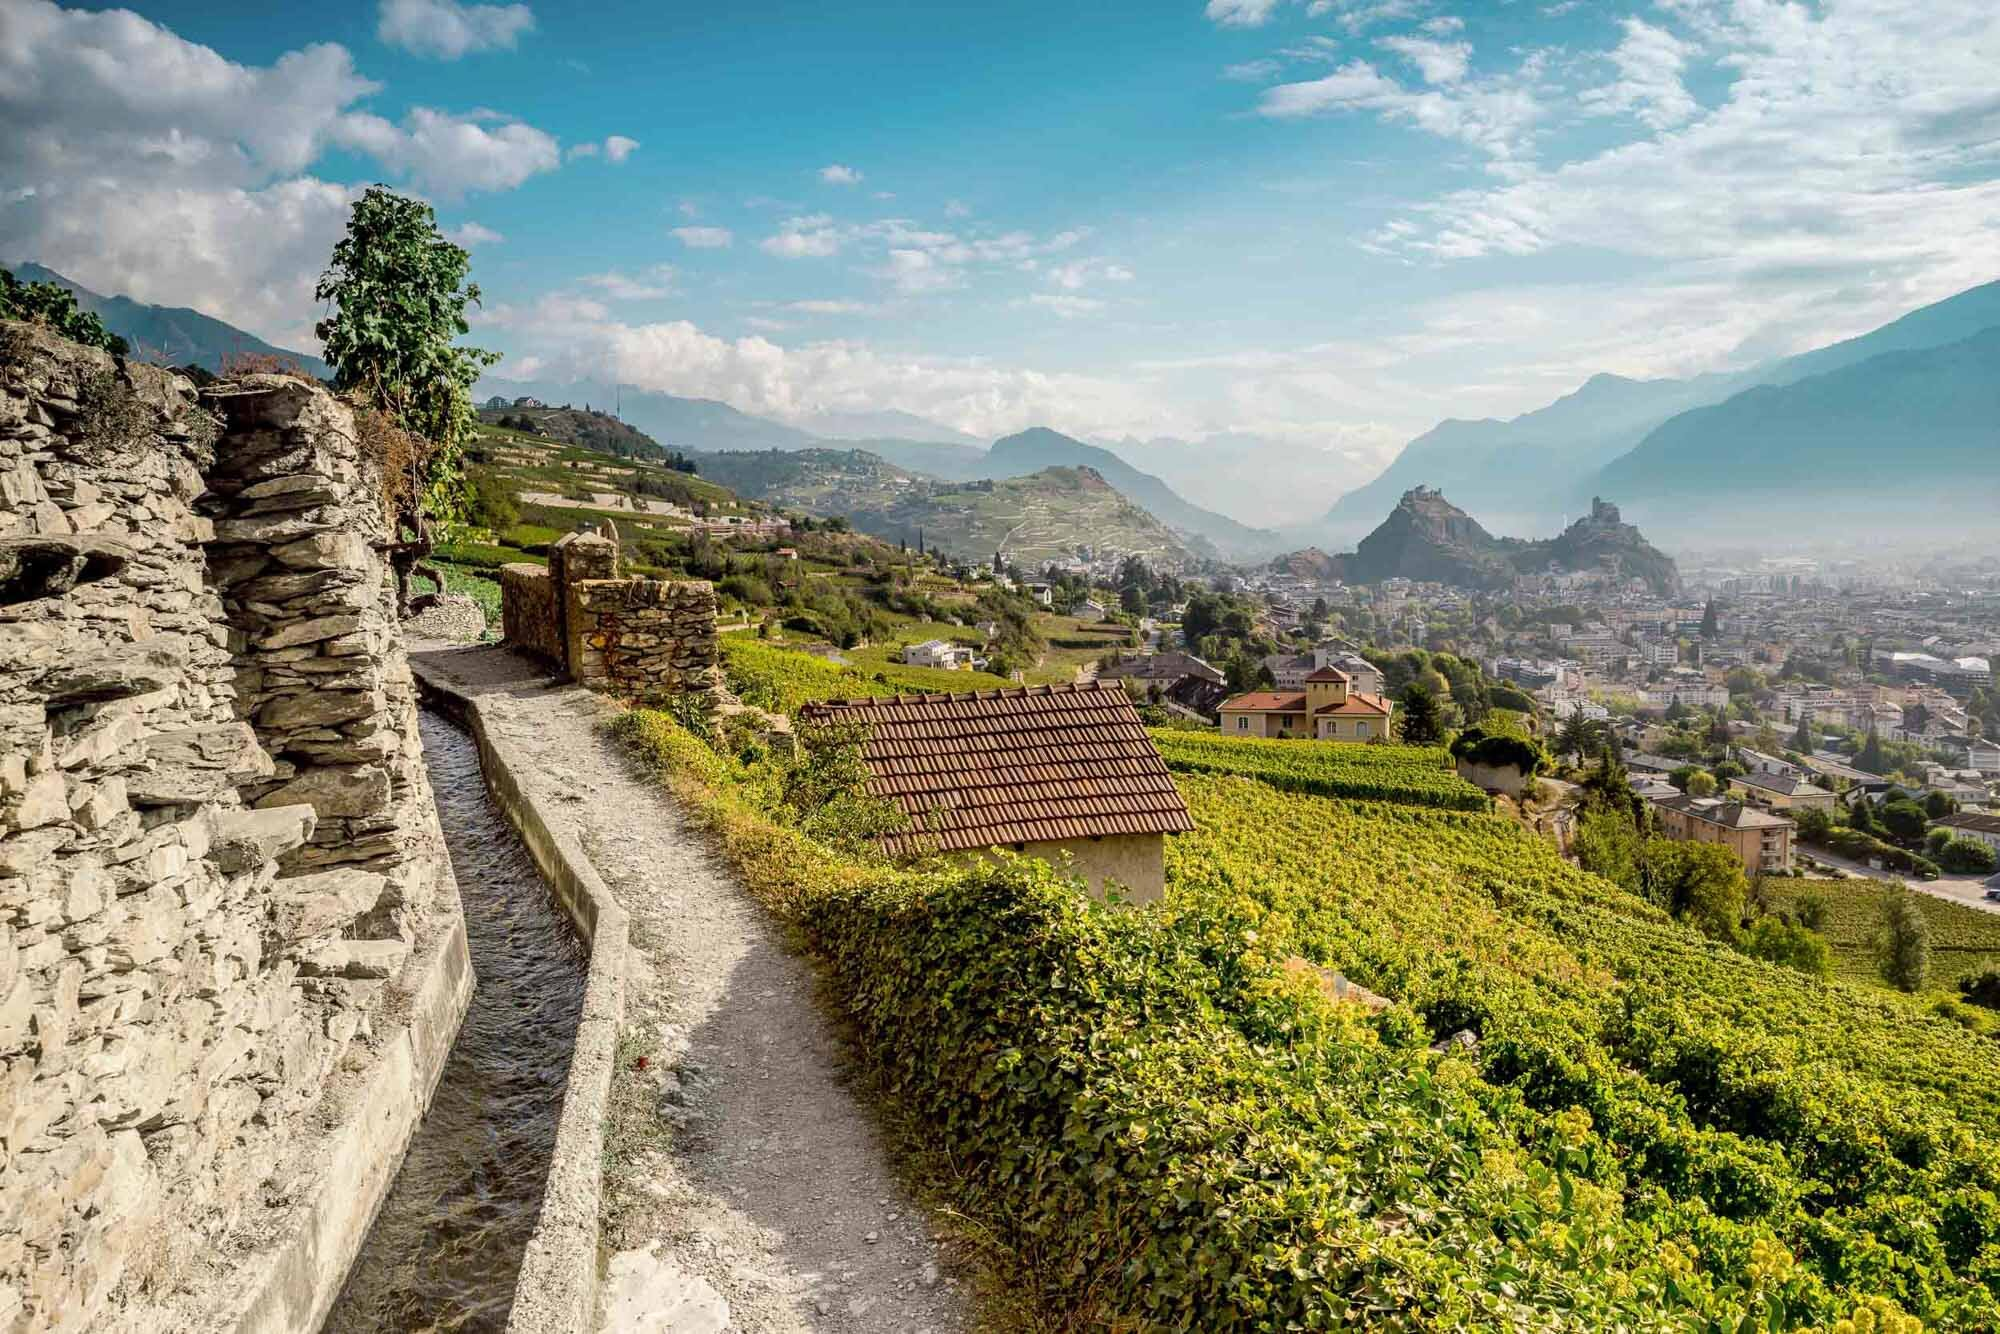 Panorama from the vineyard above Sion. Copyright by: Switzerland Tourism